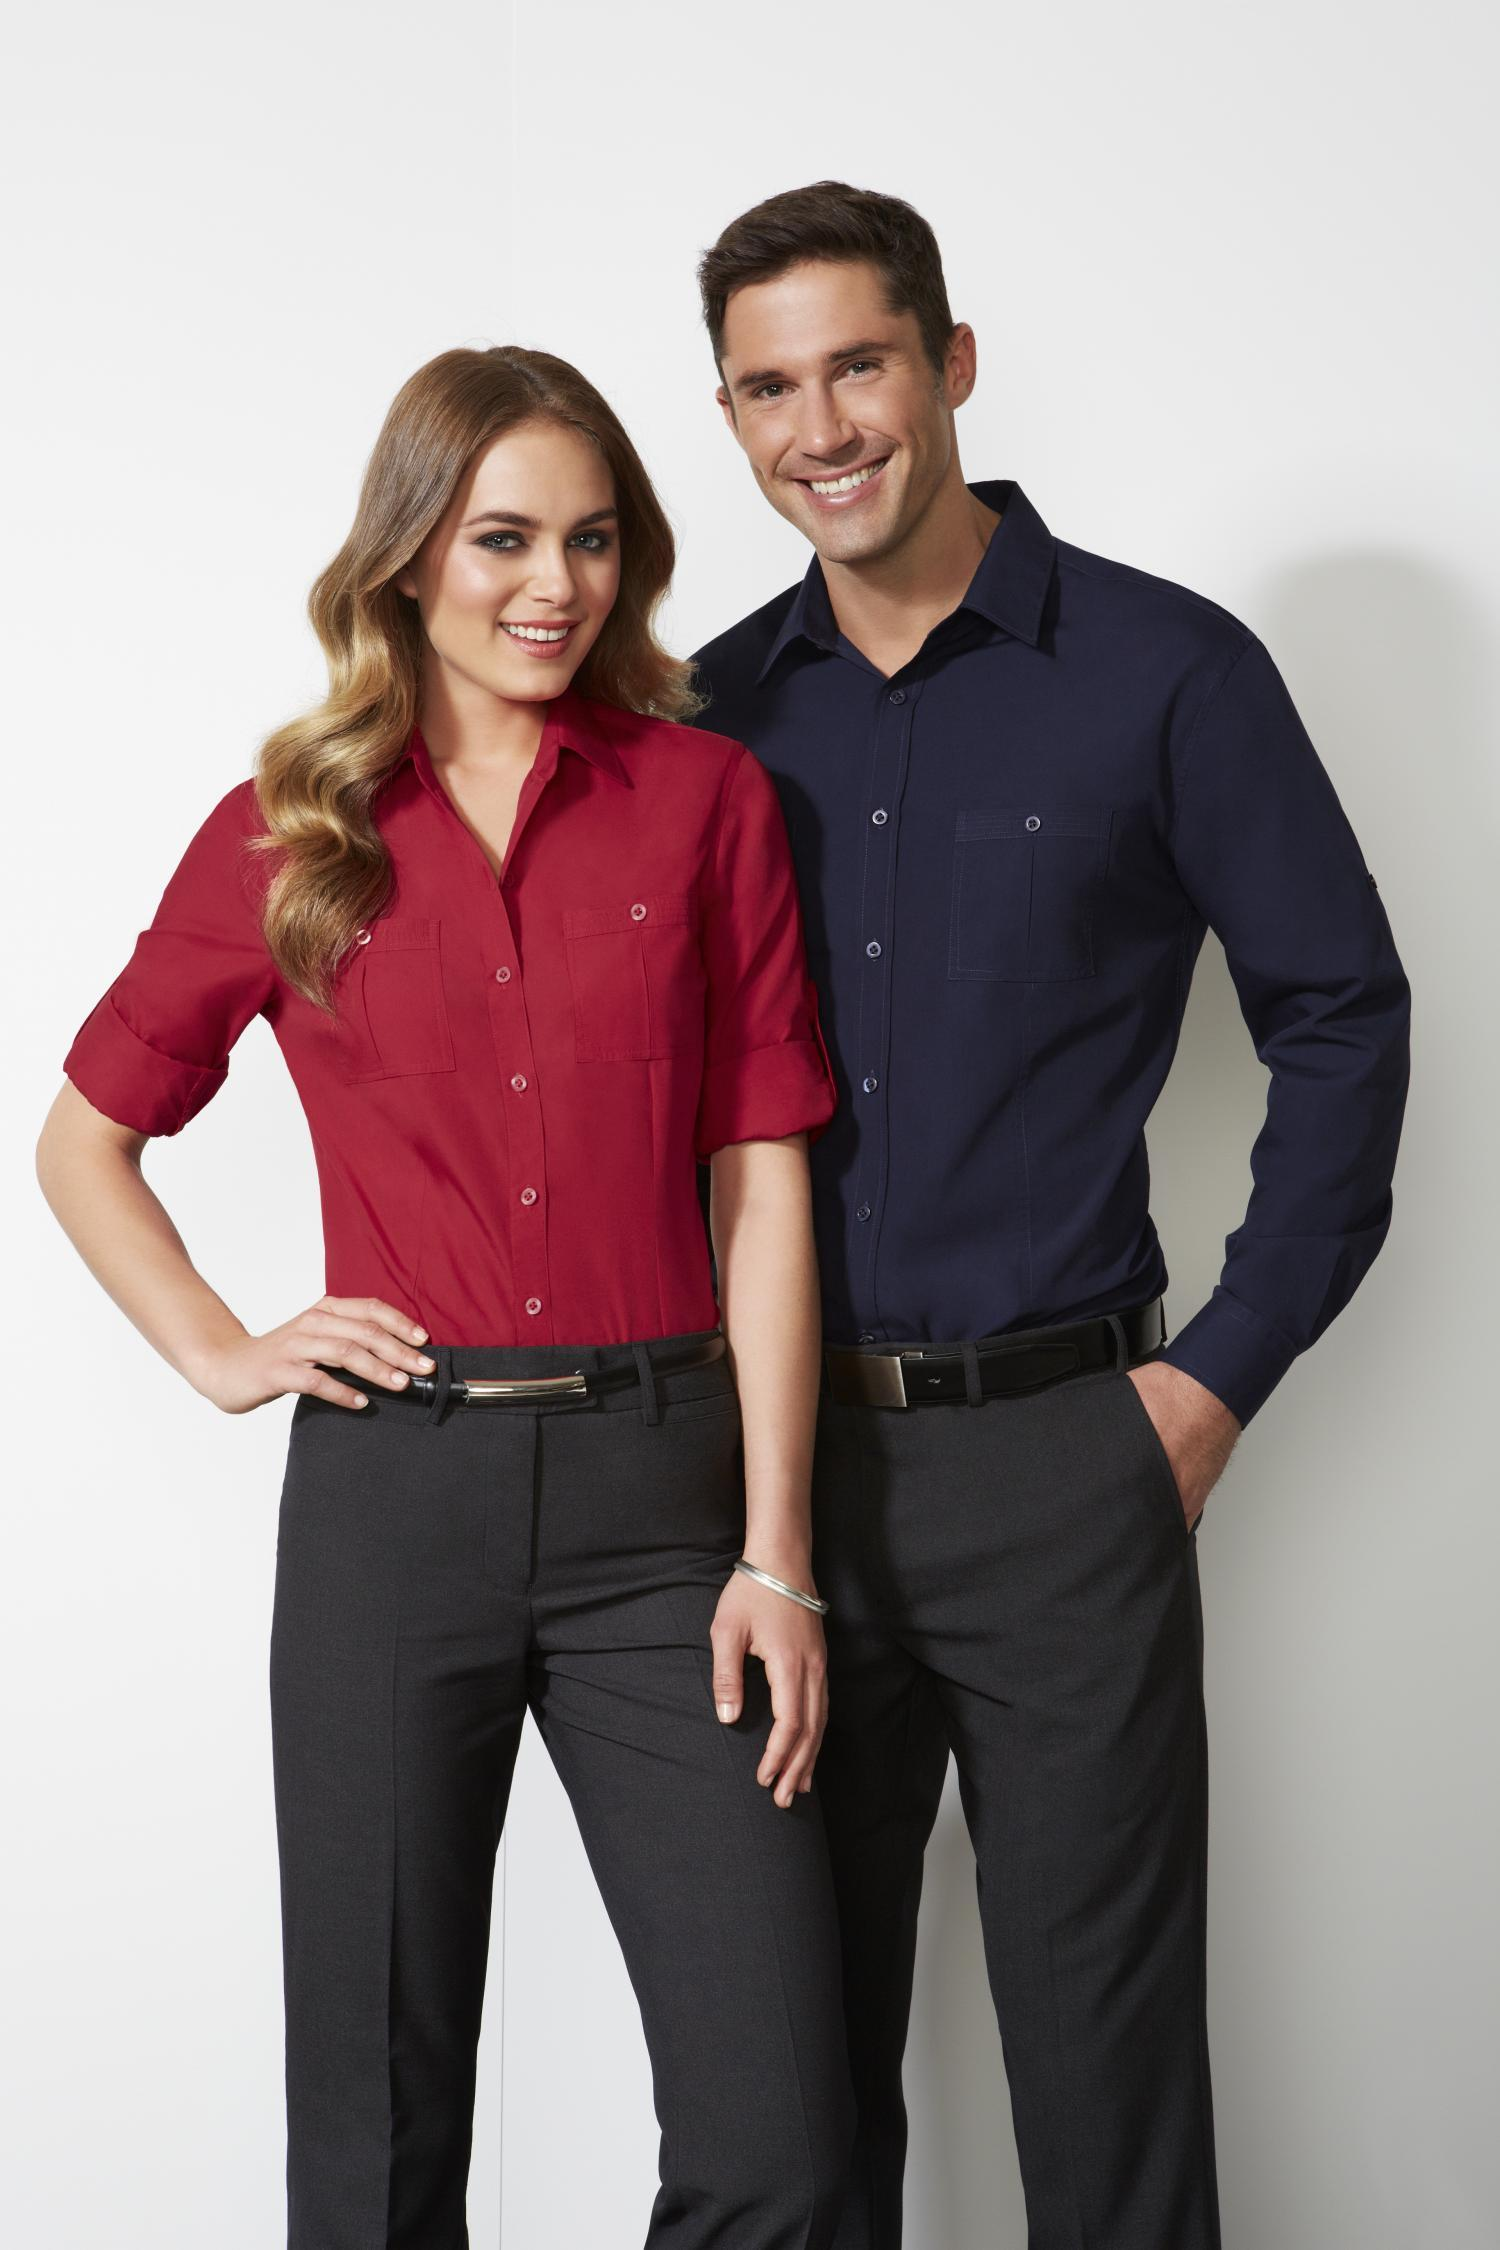 Business Casual Uniforms For Women